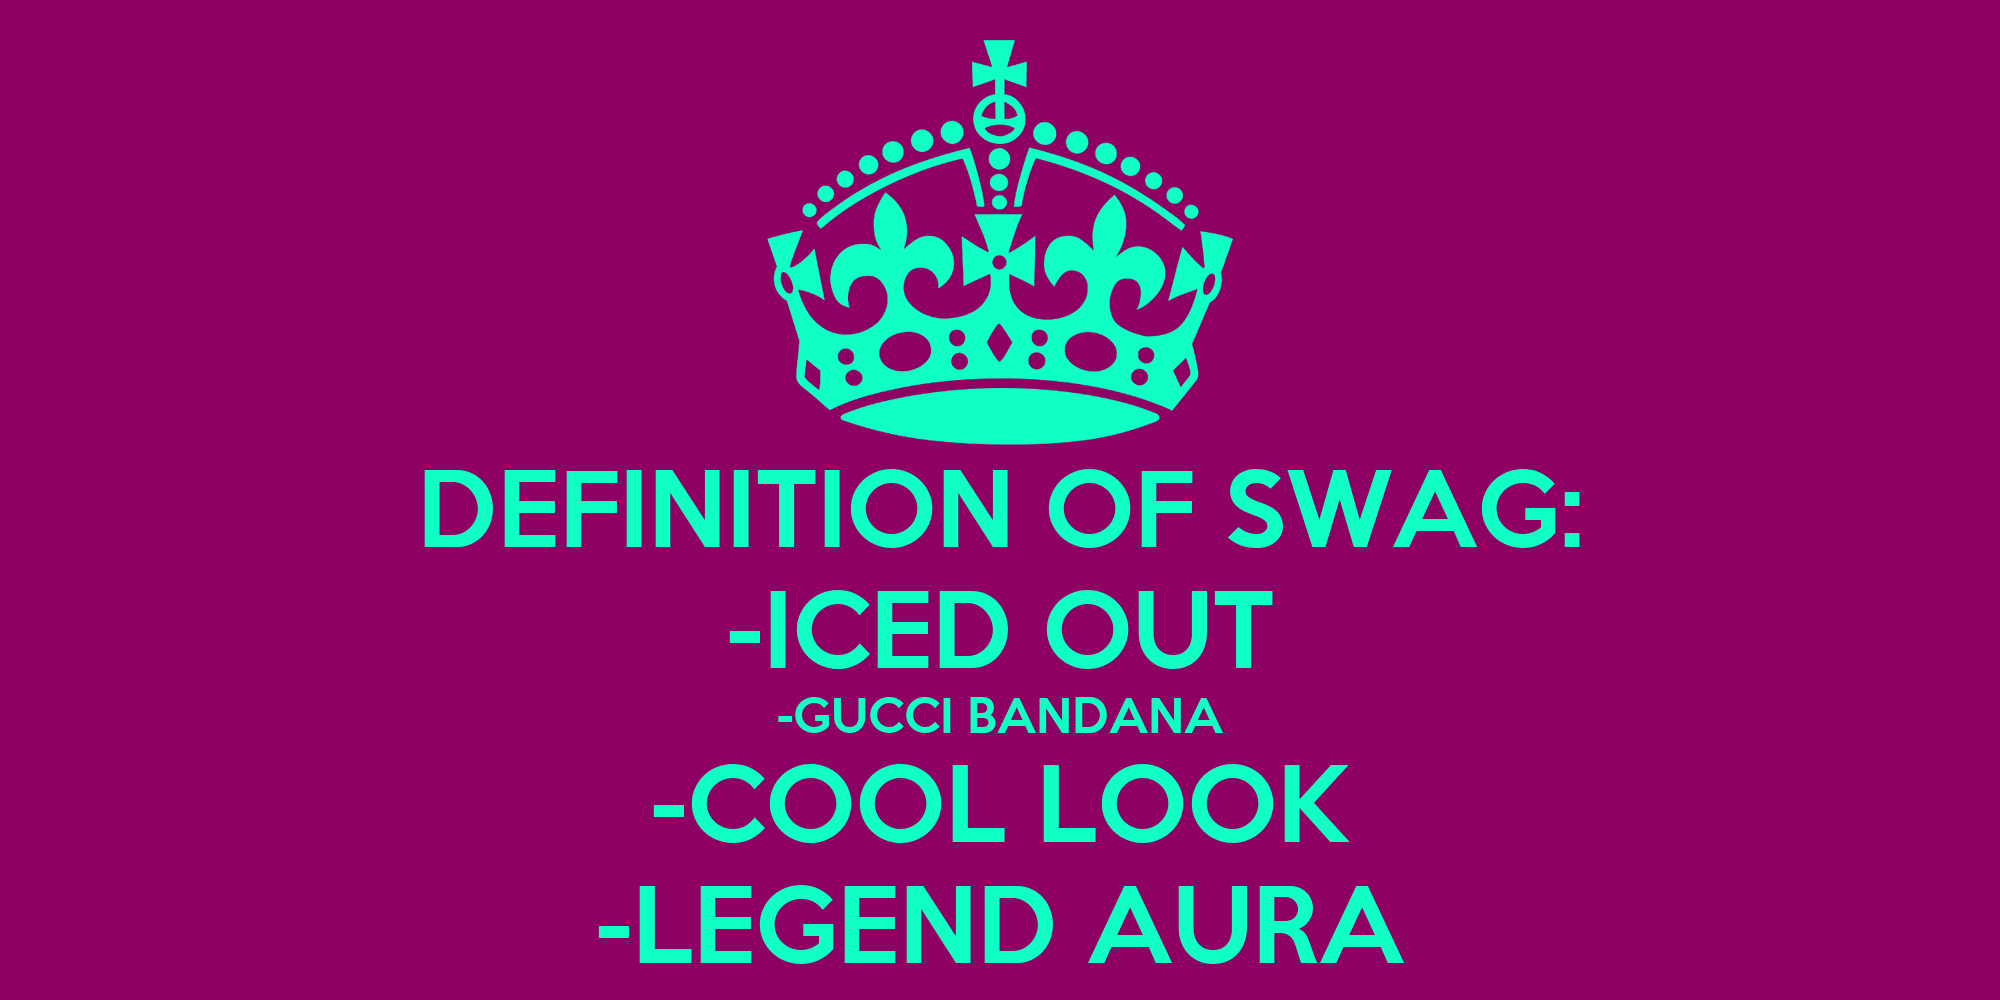 DEFINITION OF SWAG: -ICED OUT -GUCCI BANDANA -COOL LOOK -LEGEND AURA